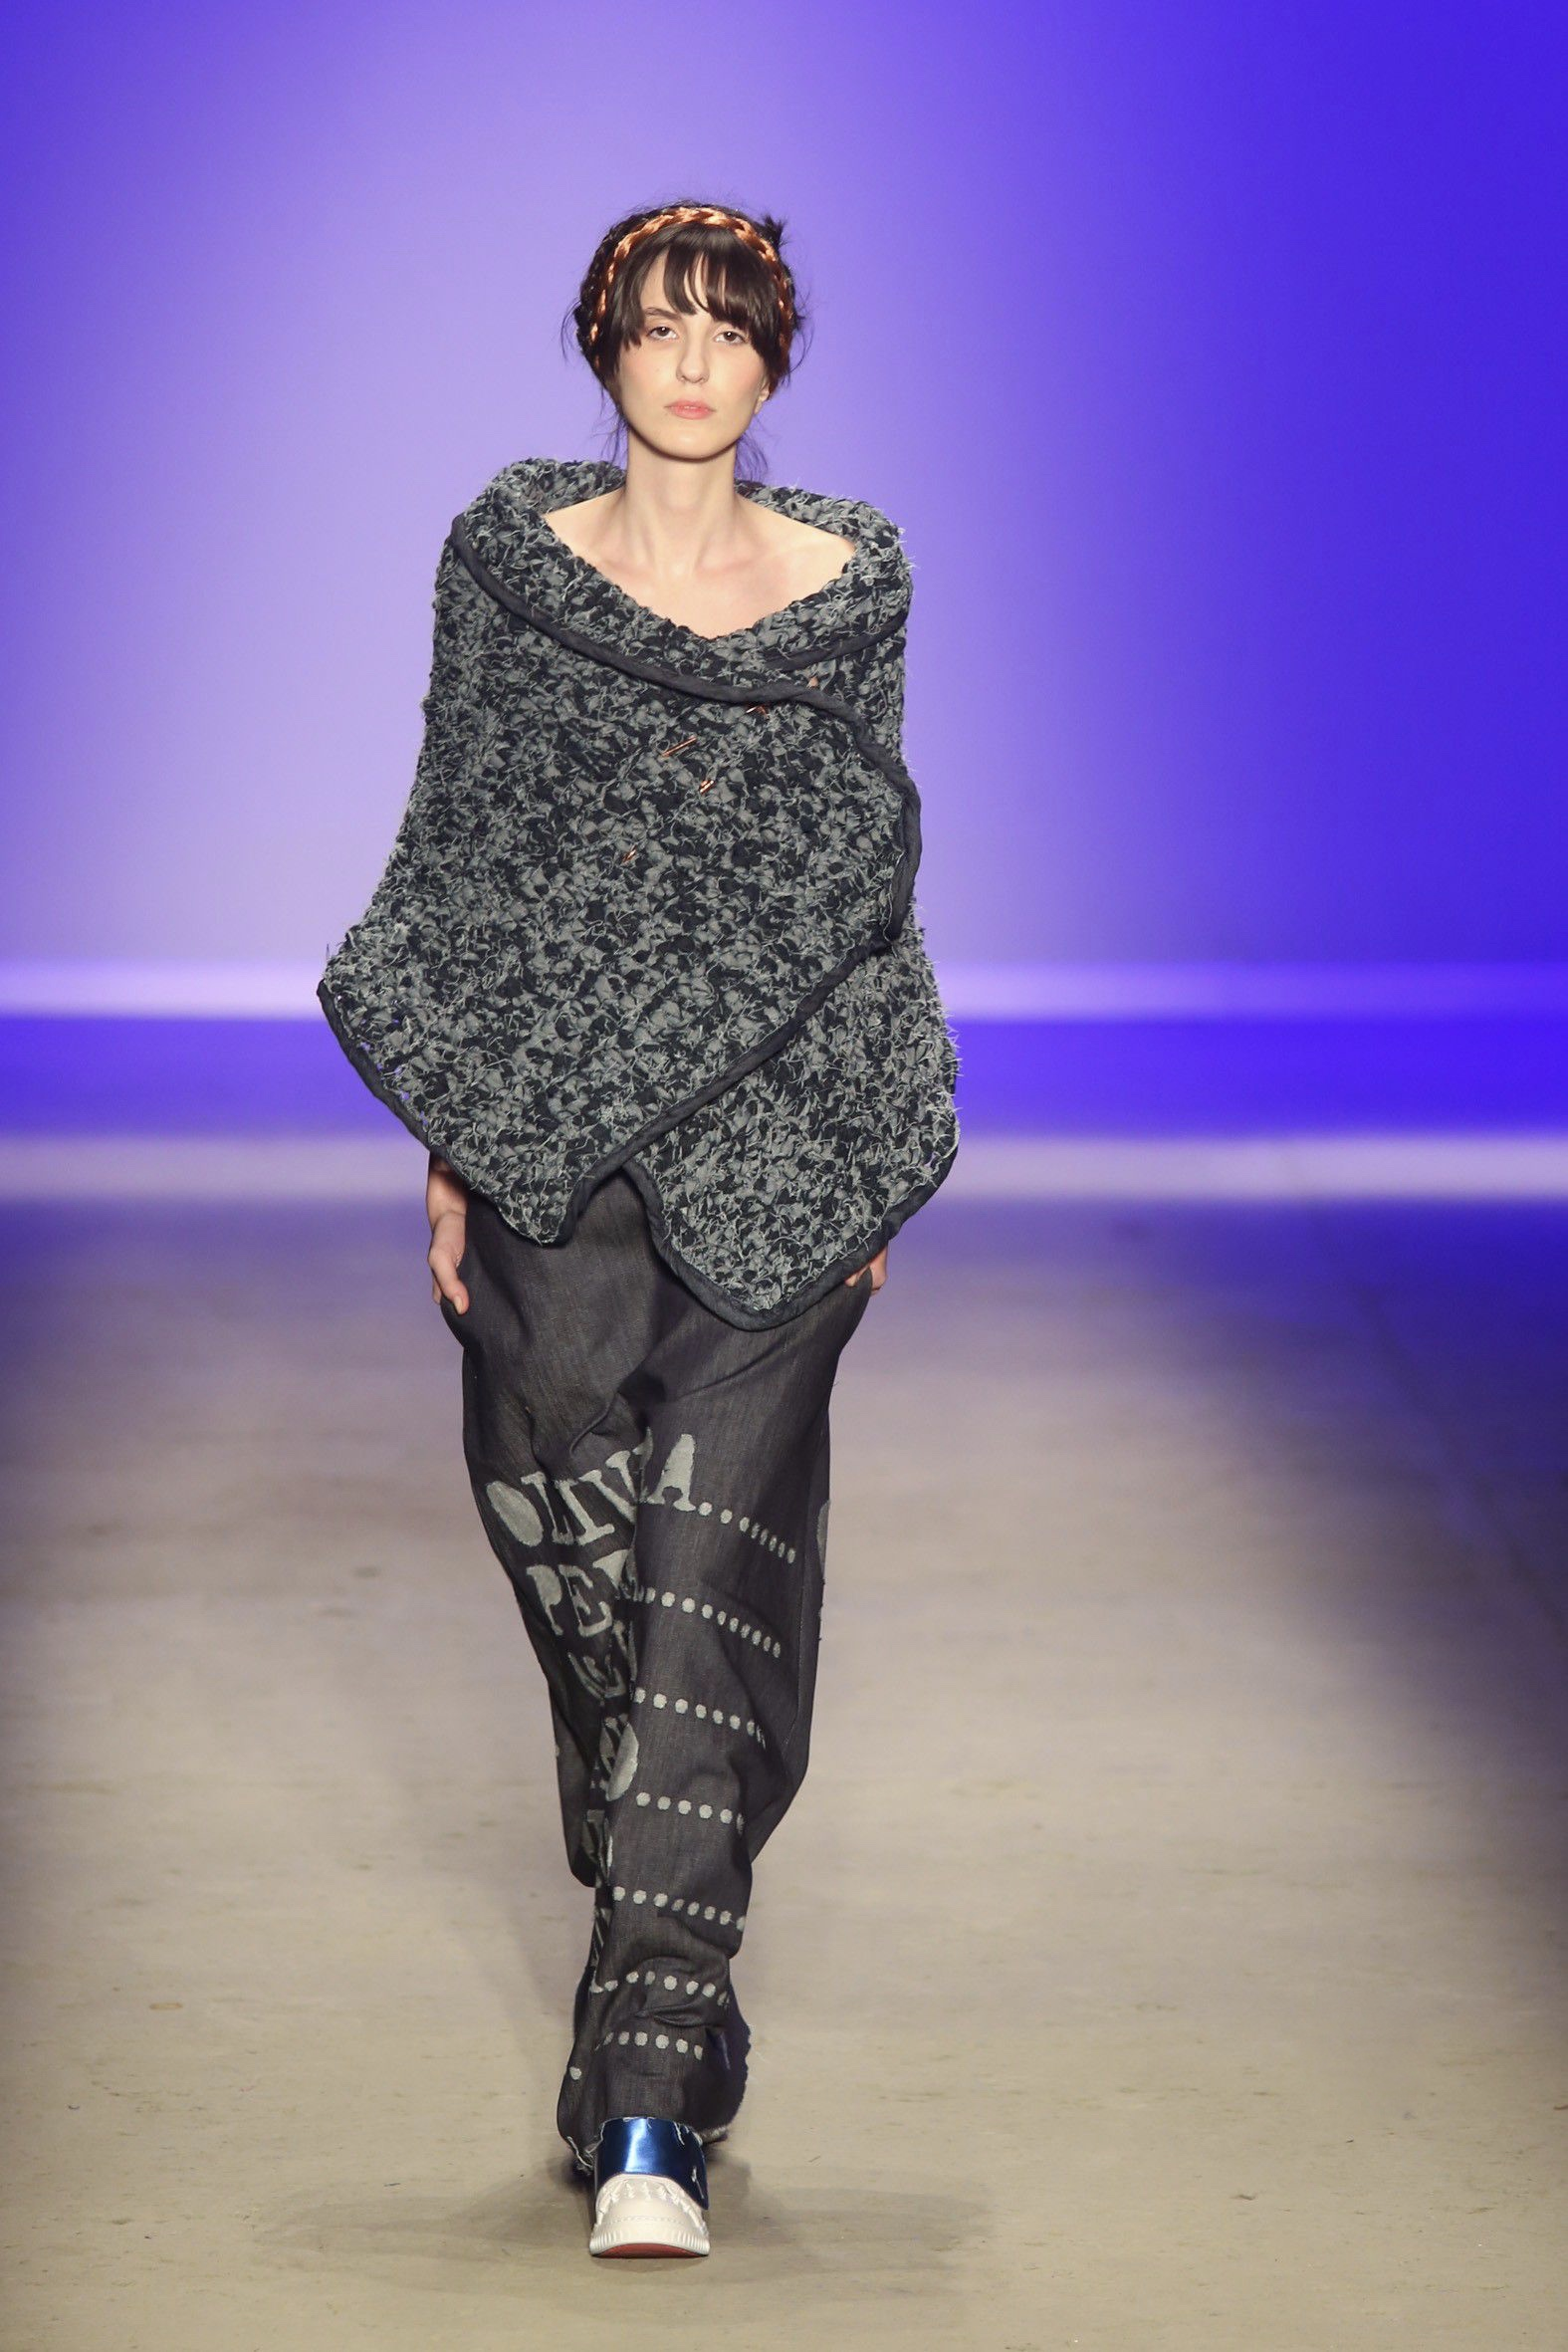 One of the looks from Ronaldo Fraga's intolerance-influenced collection / Photo: Xinhua/Rahel Patrasso.